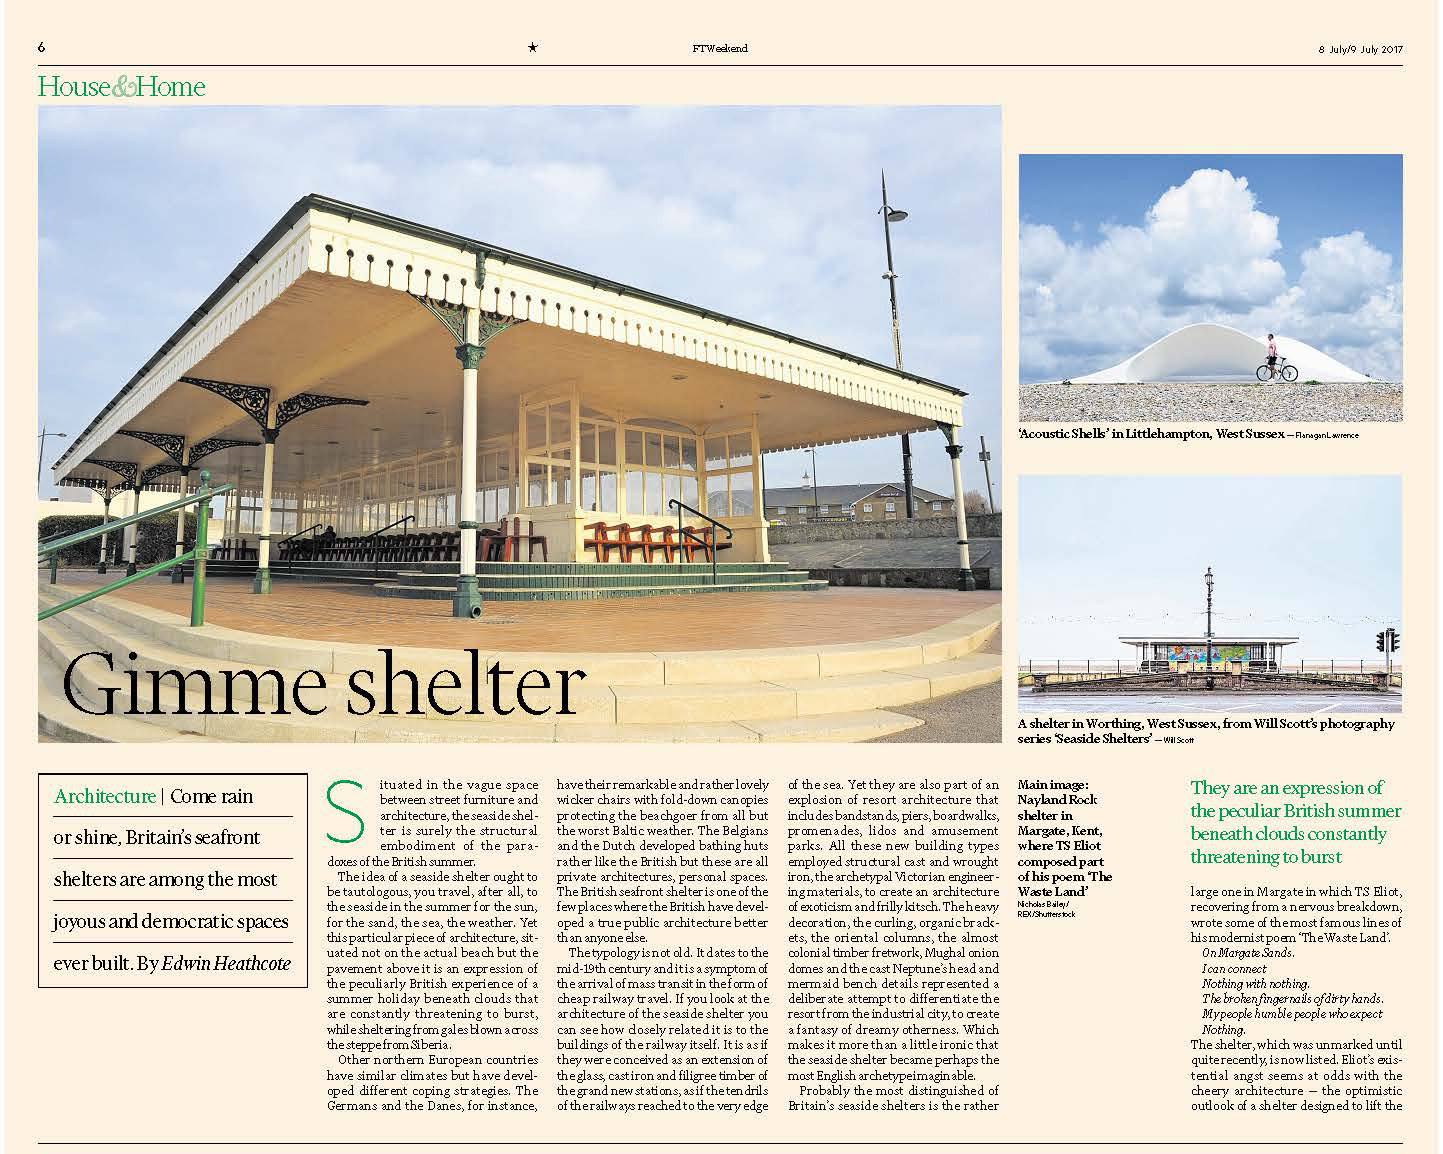 FT H&H 08jul p6 and 7 Gimme shelter_Page_1.jpg